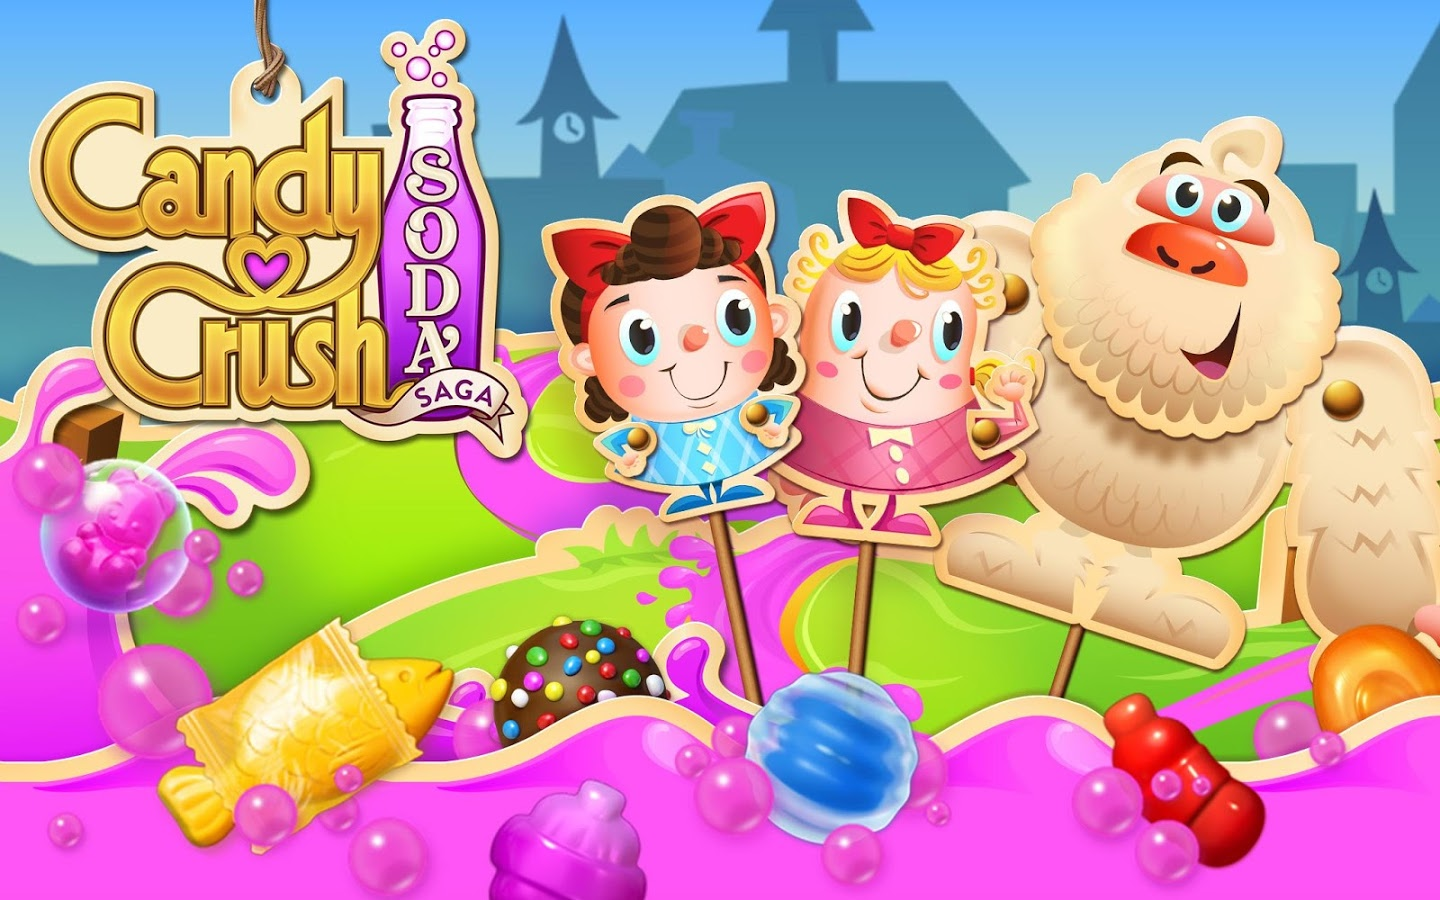 Follow Candy Crush Saga on GameHunters.Club to get the latest cheats, extra lives, cheat engine hacks & tips. Join us no registration required